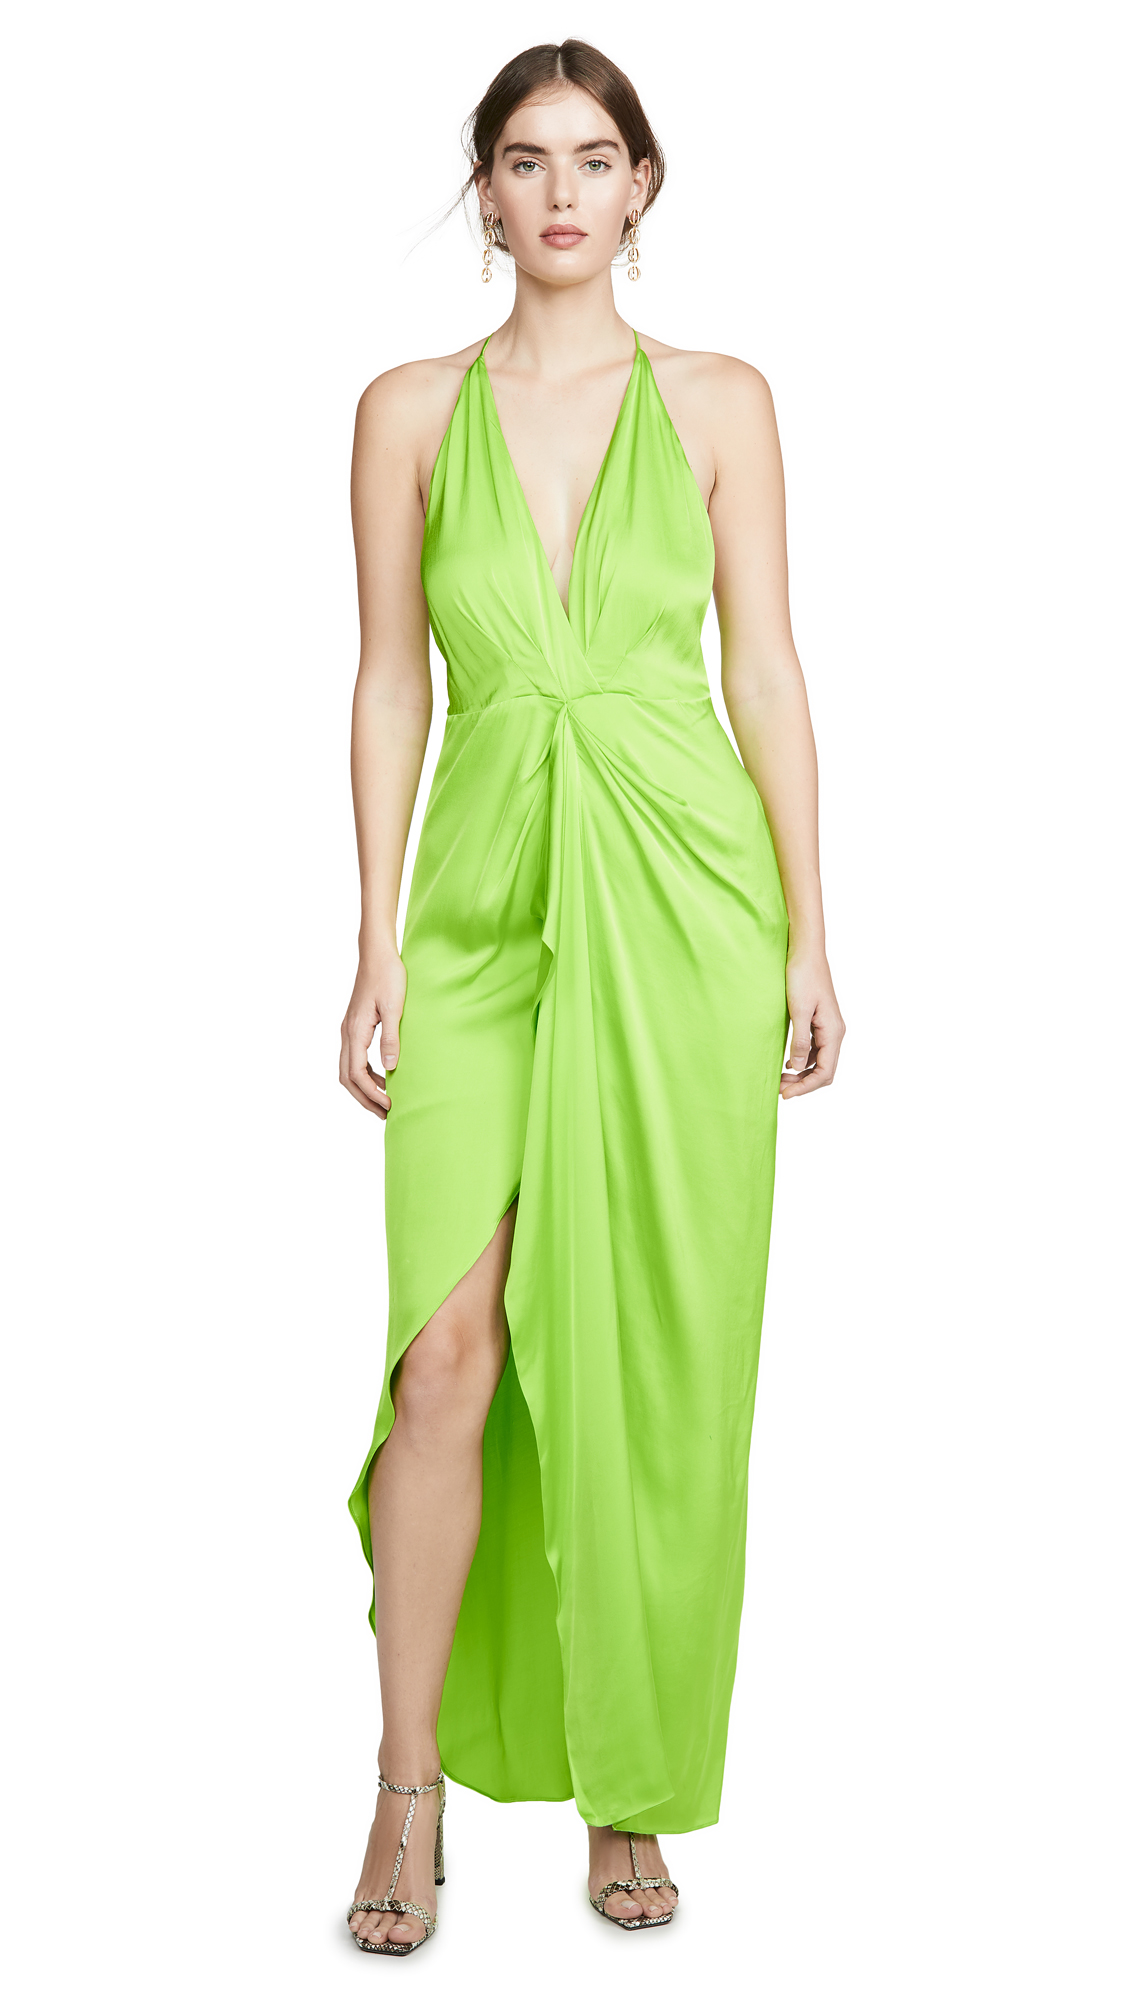 Manning Cartell Australia Game Changer Maxi Dress - 30% Off Sale